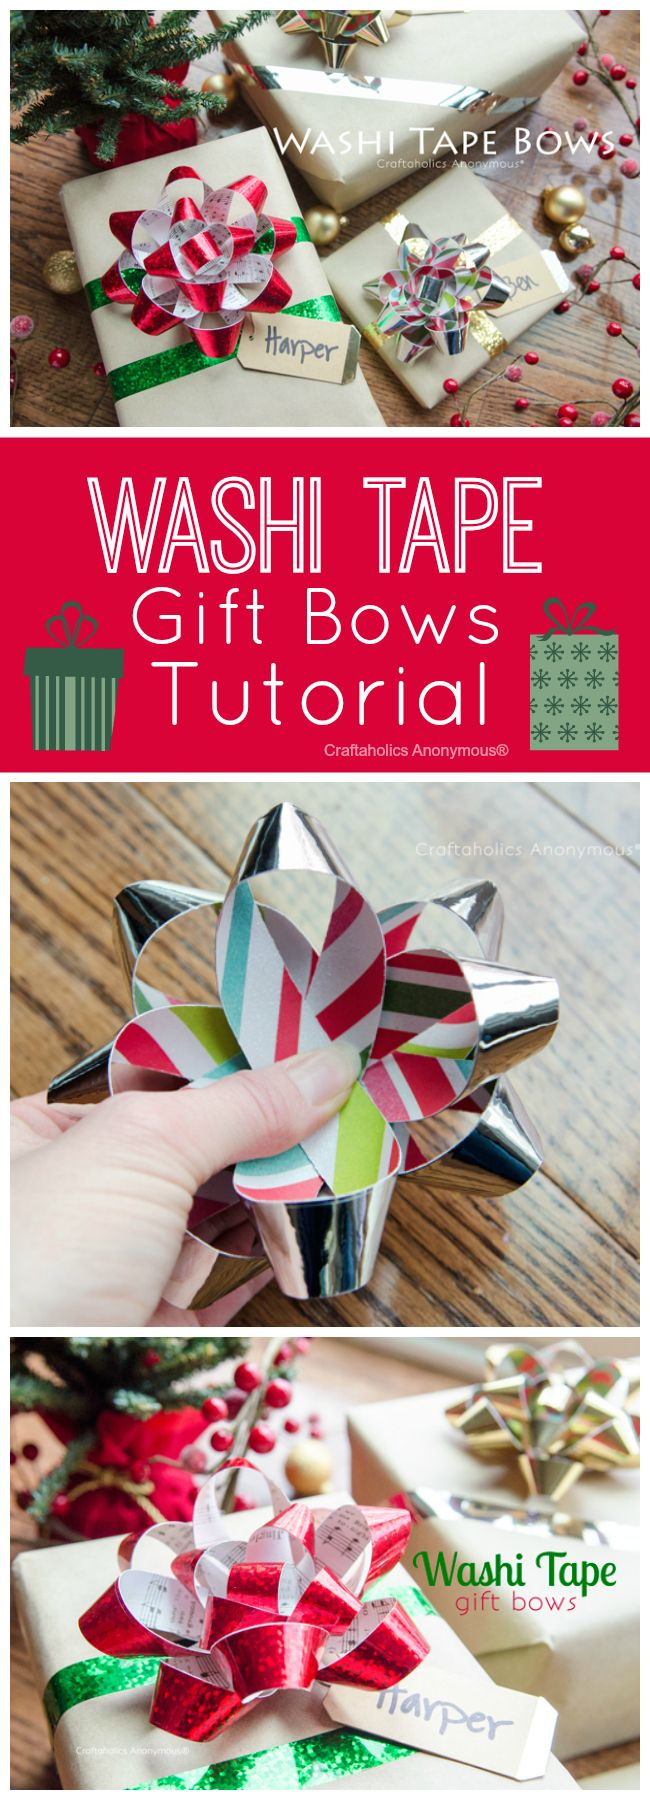 58 best gift wrap images on Pinterest   Gift wrapping, Wrapping ...